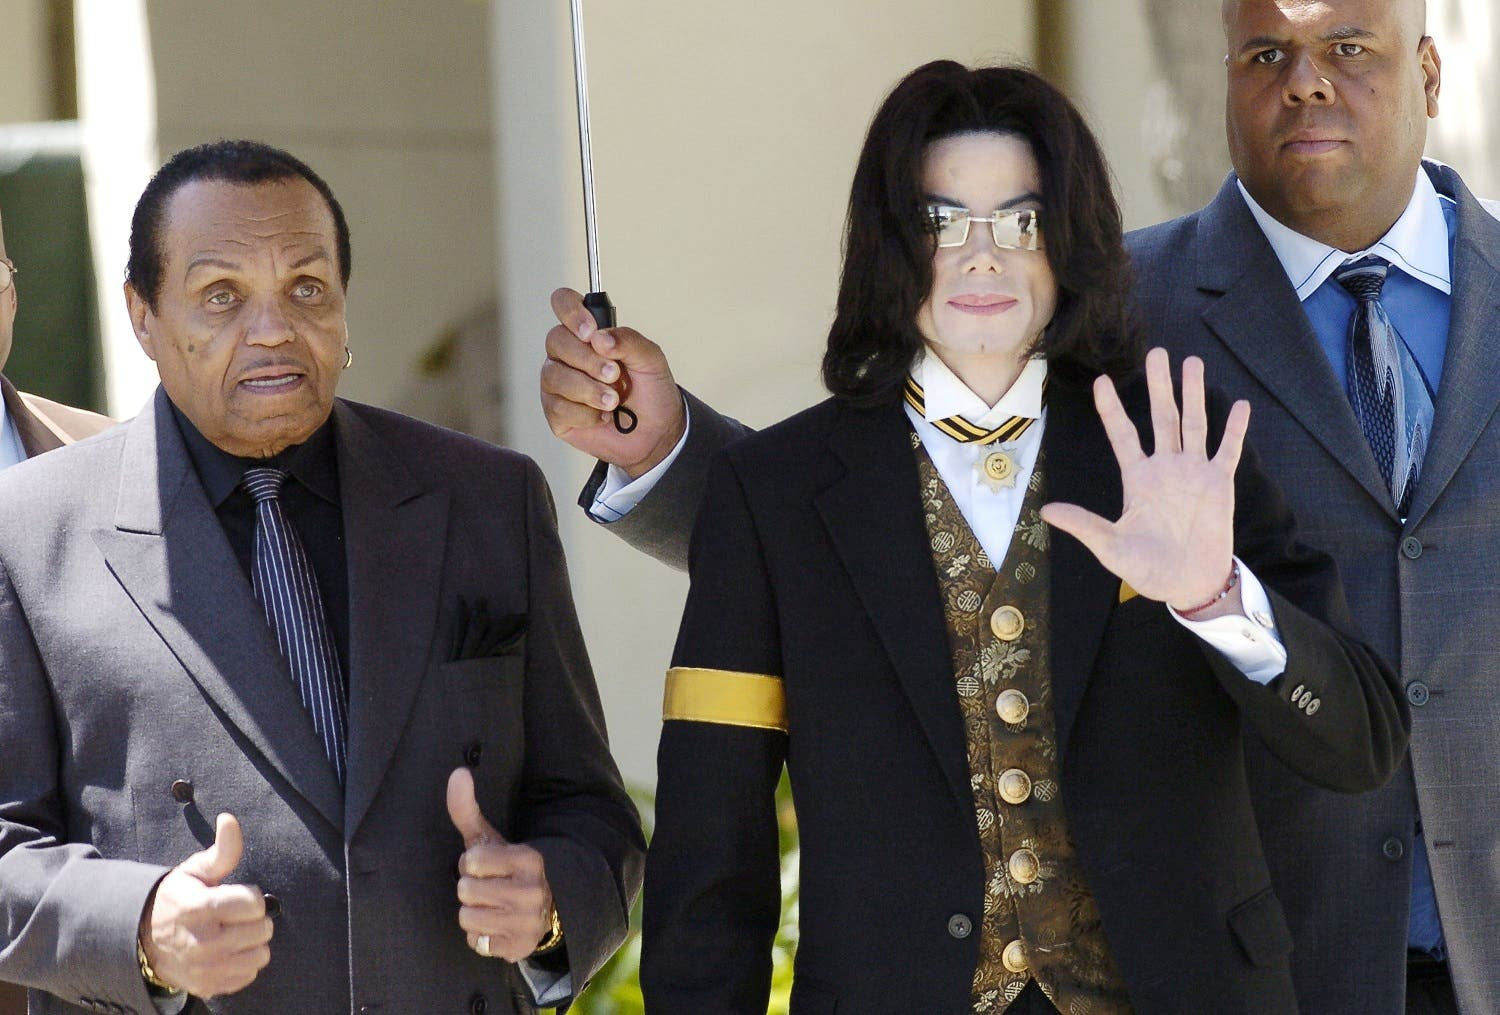 Pop star Michael Jackson waves as he and his father Joe Jackson (L) leave the courthouse in Santa Maria, California April 25, 2005. (Reuters)